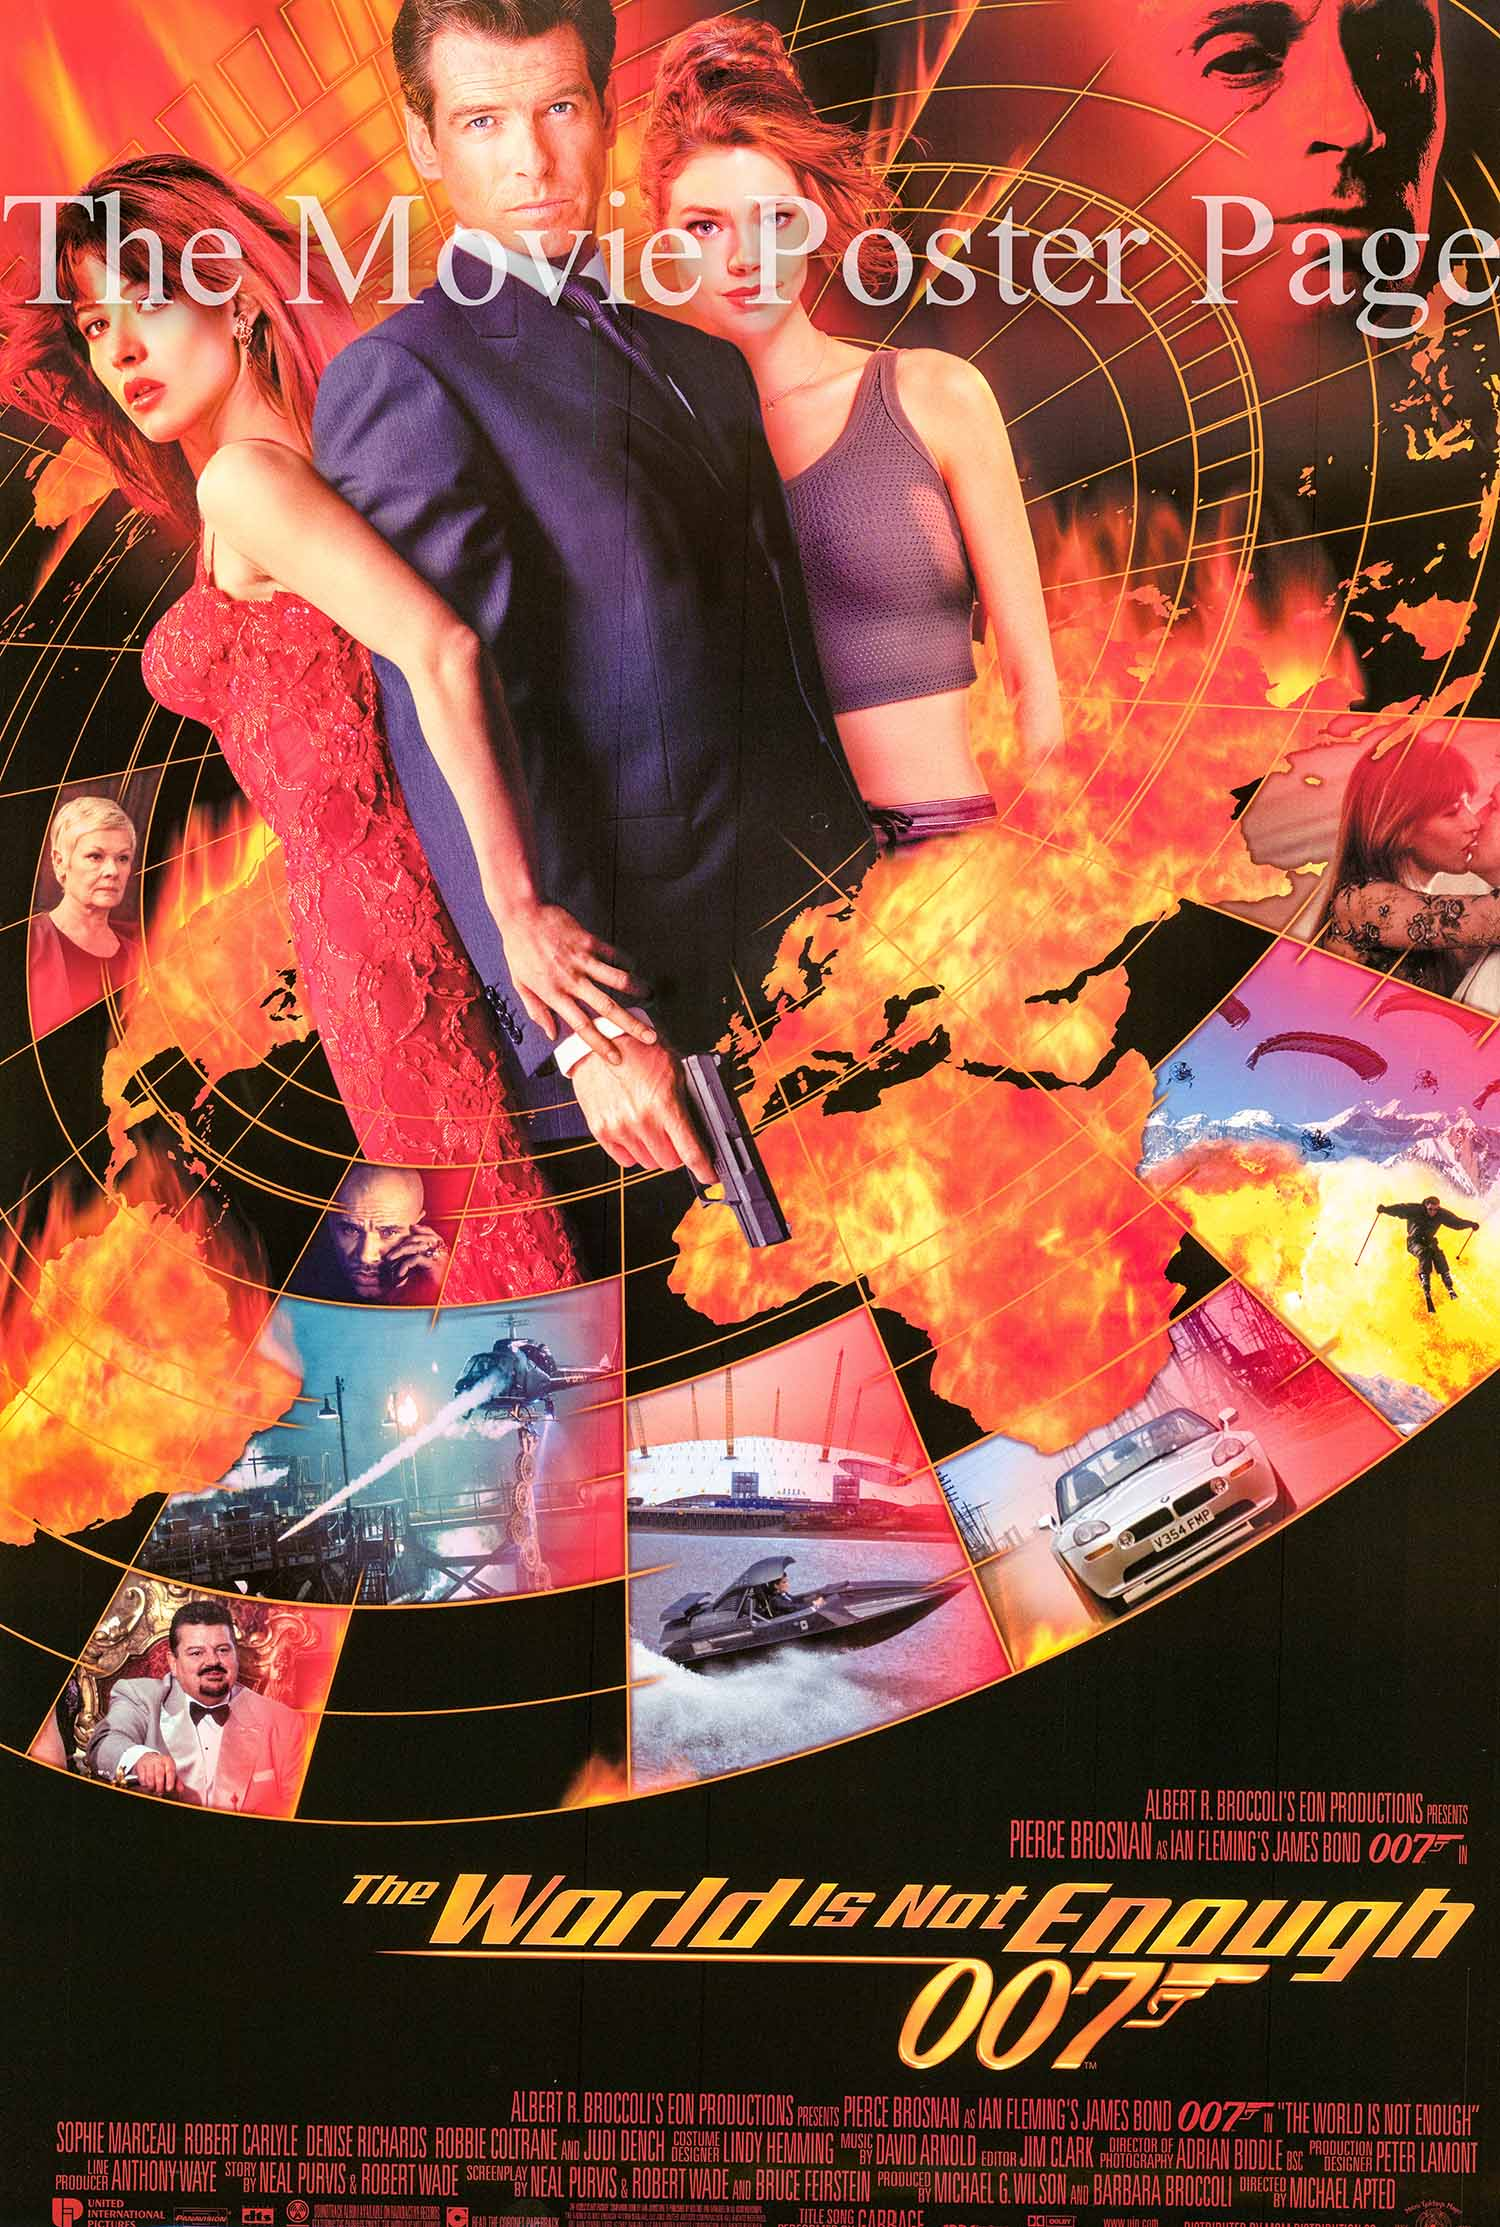 Pictured is an international  promotional poster for the 1999 Michael Apted film the World is Not Enough starring Pierce Brosnan as James Bond.